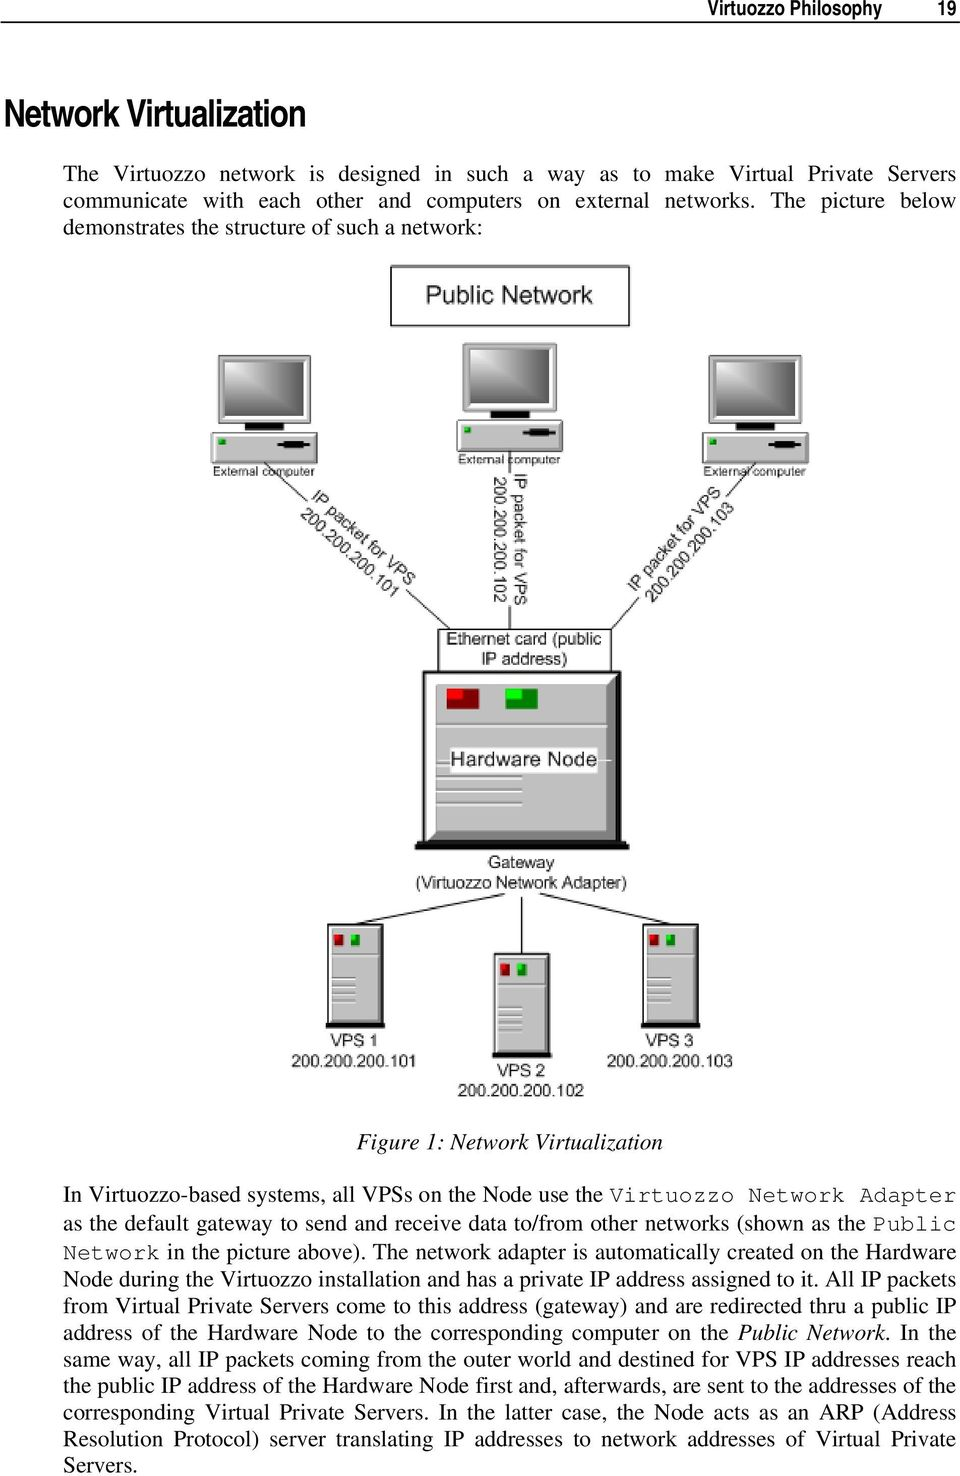 gateway to send and receive data to/from other networks (shown as the Public Network in the picture above).